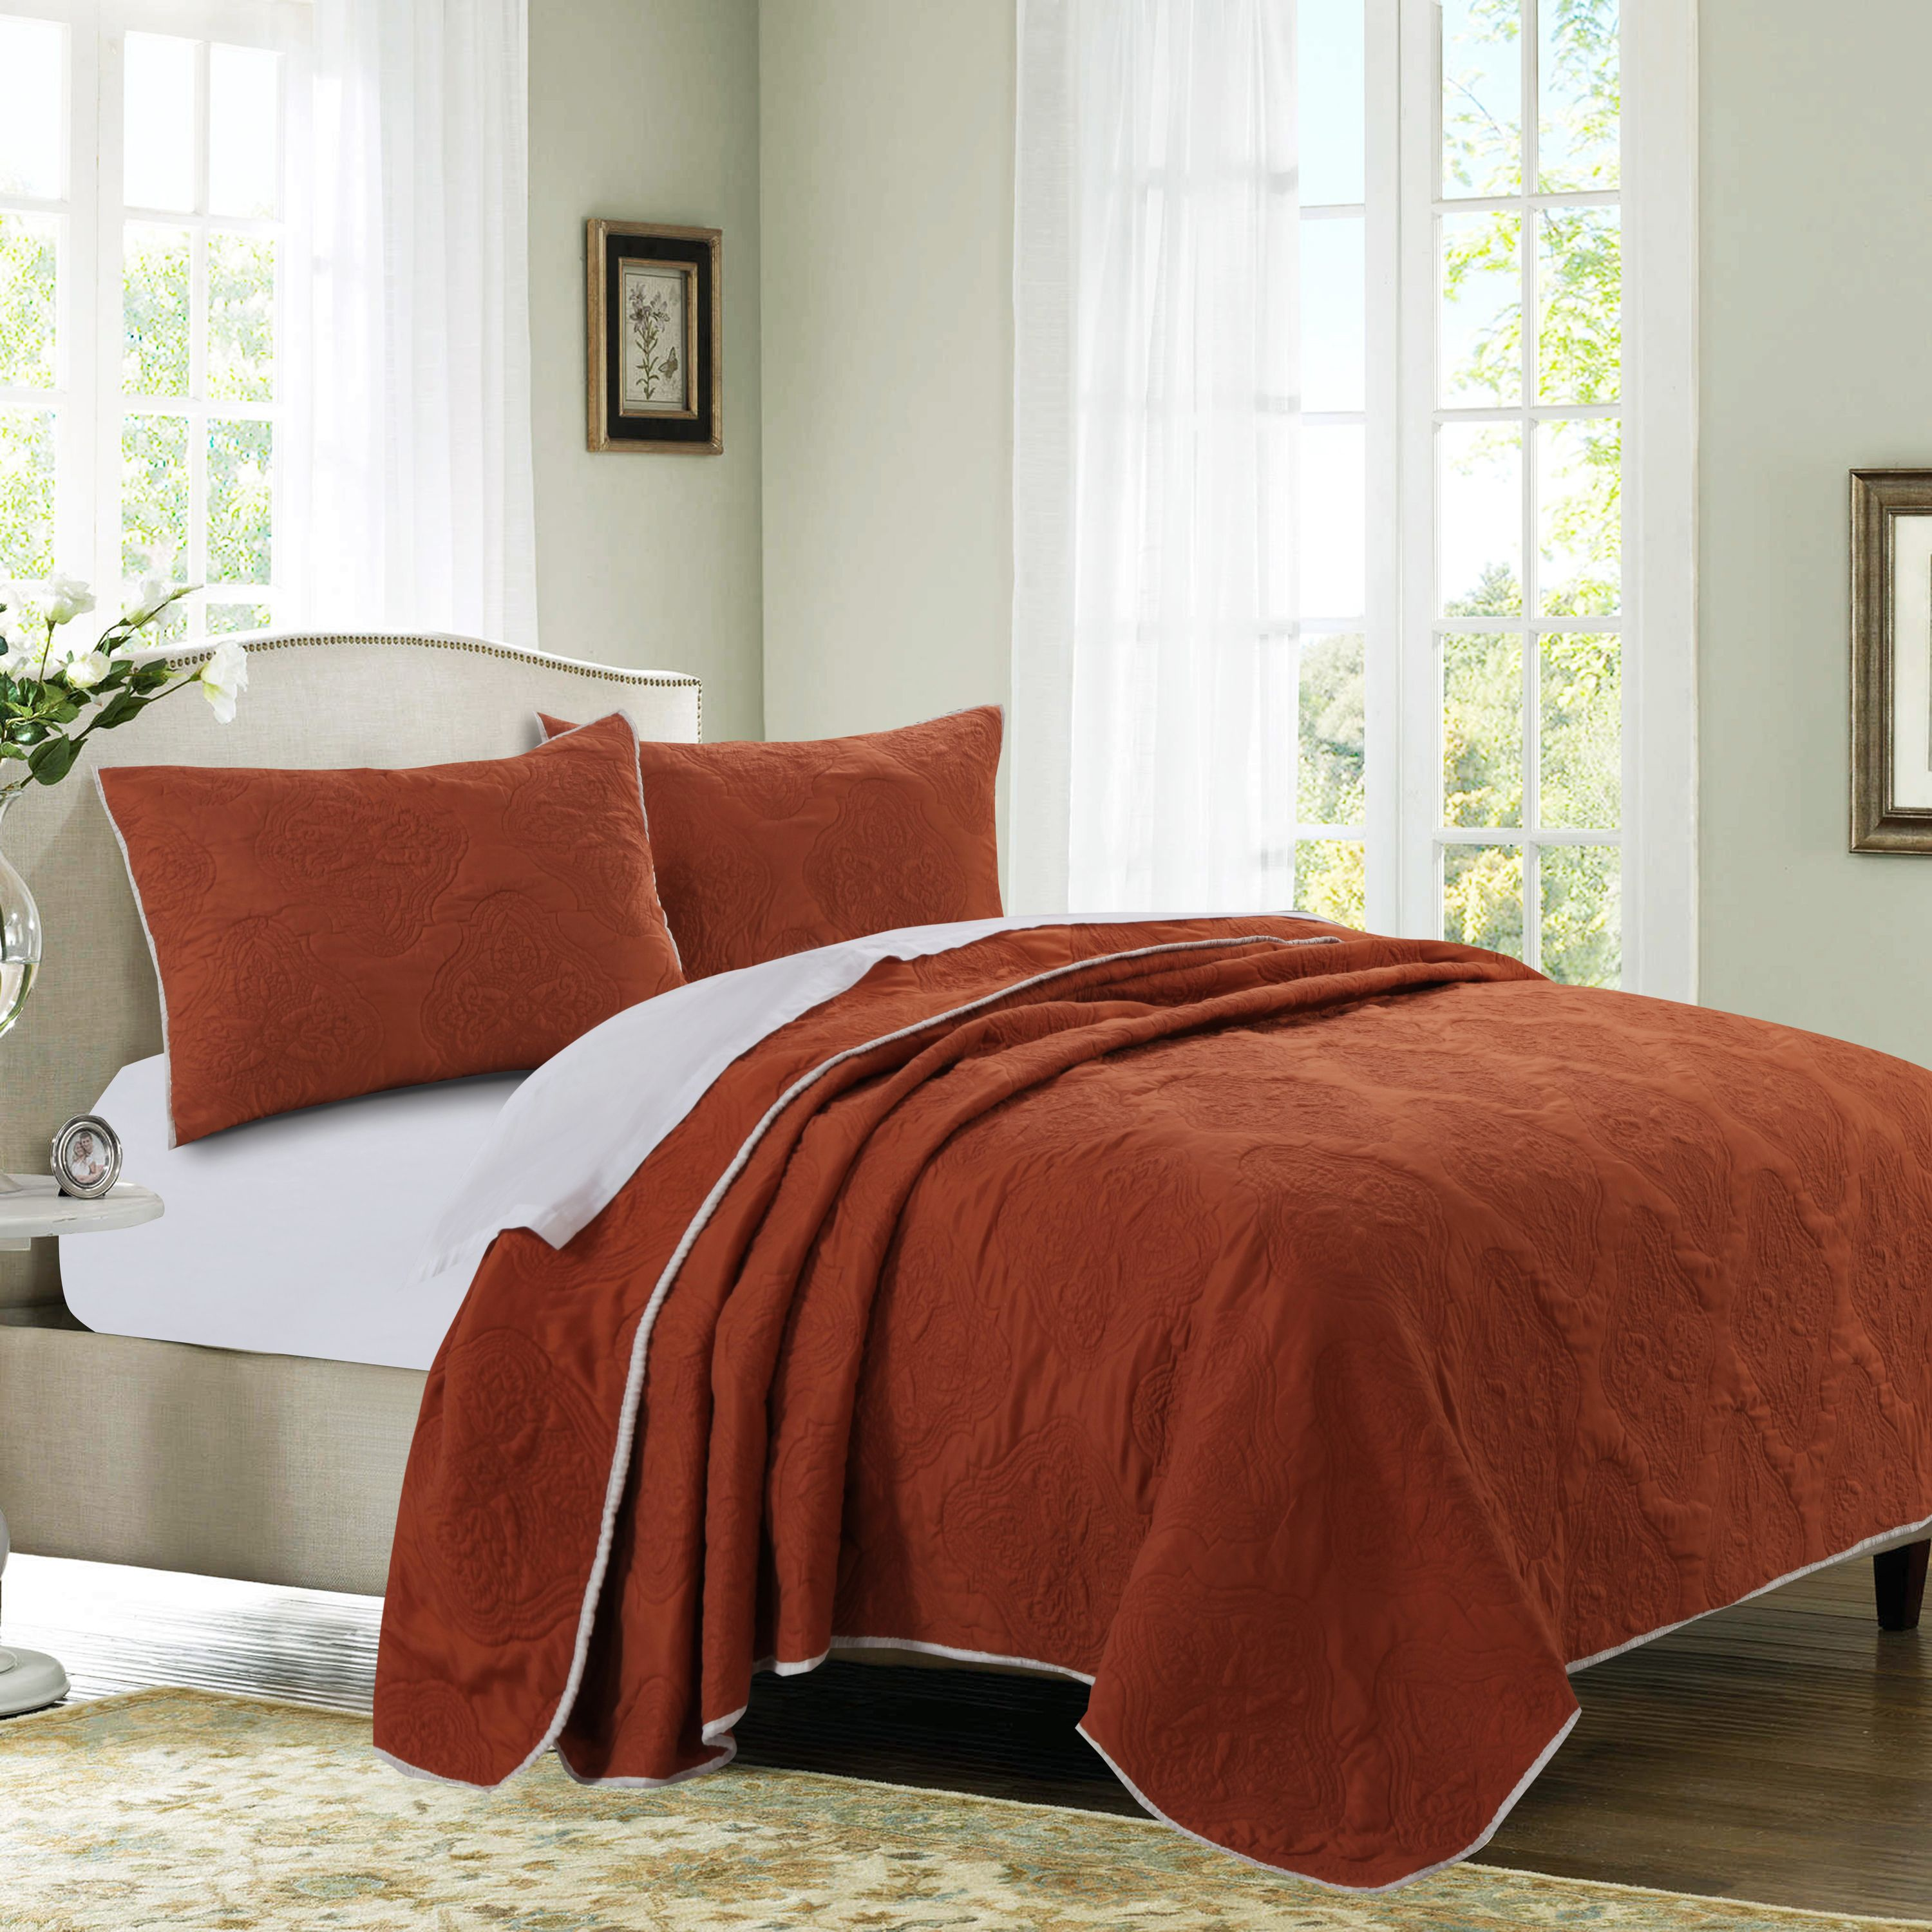 Global Trends Claire Sienna Quilt Set